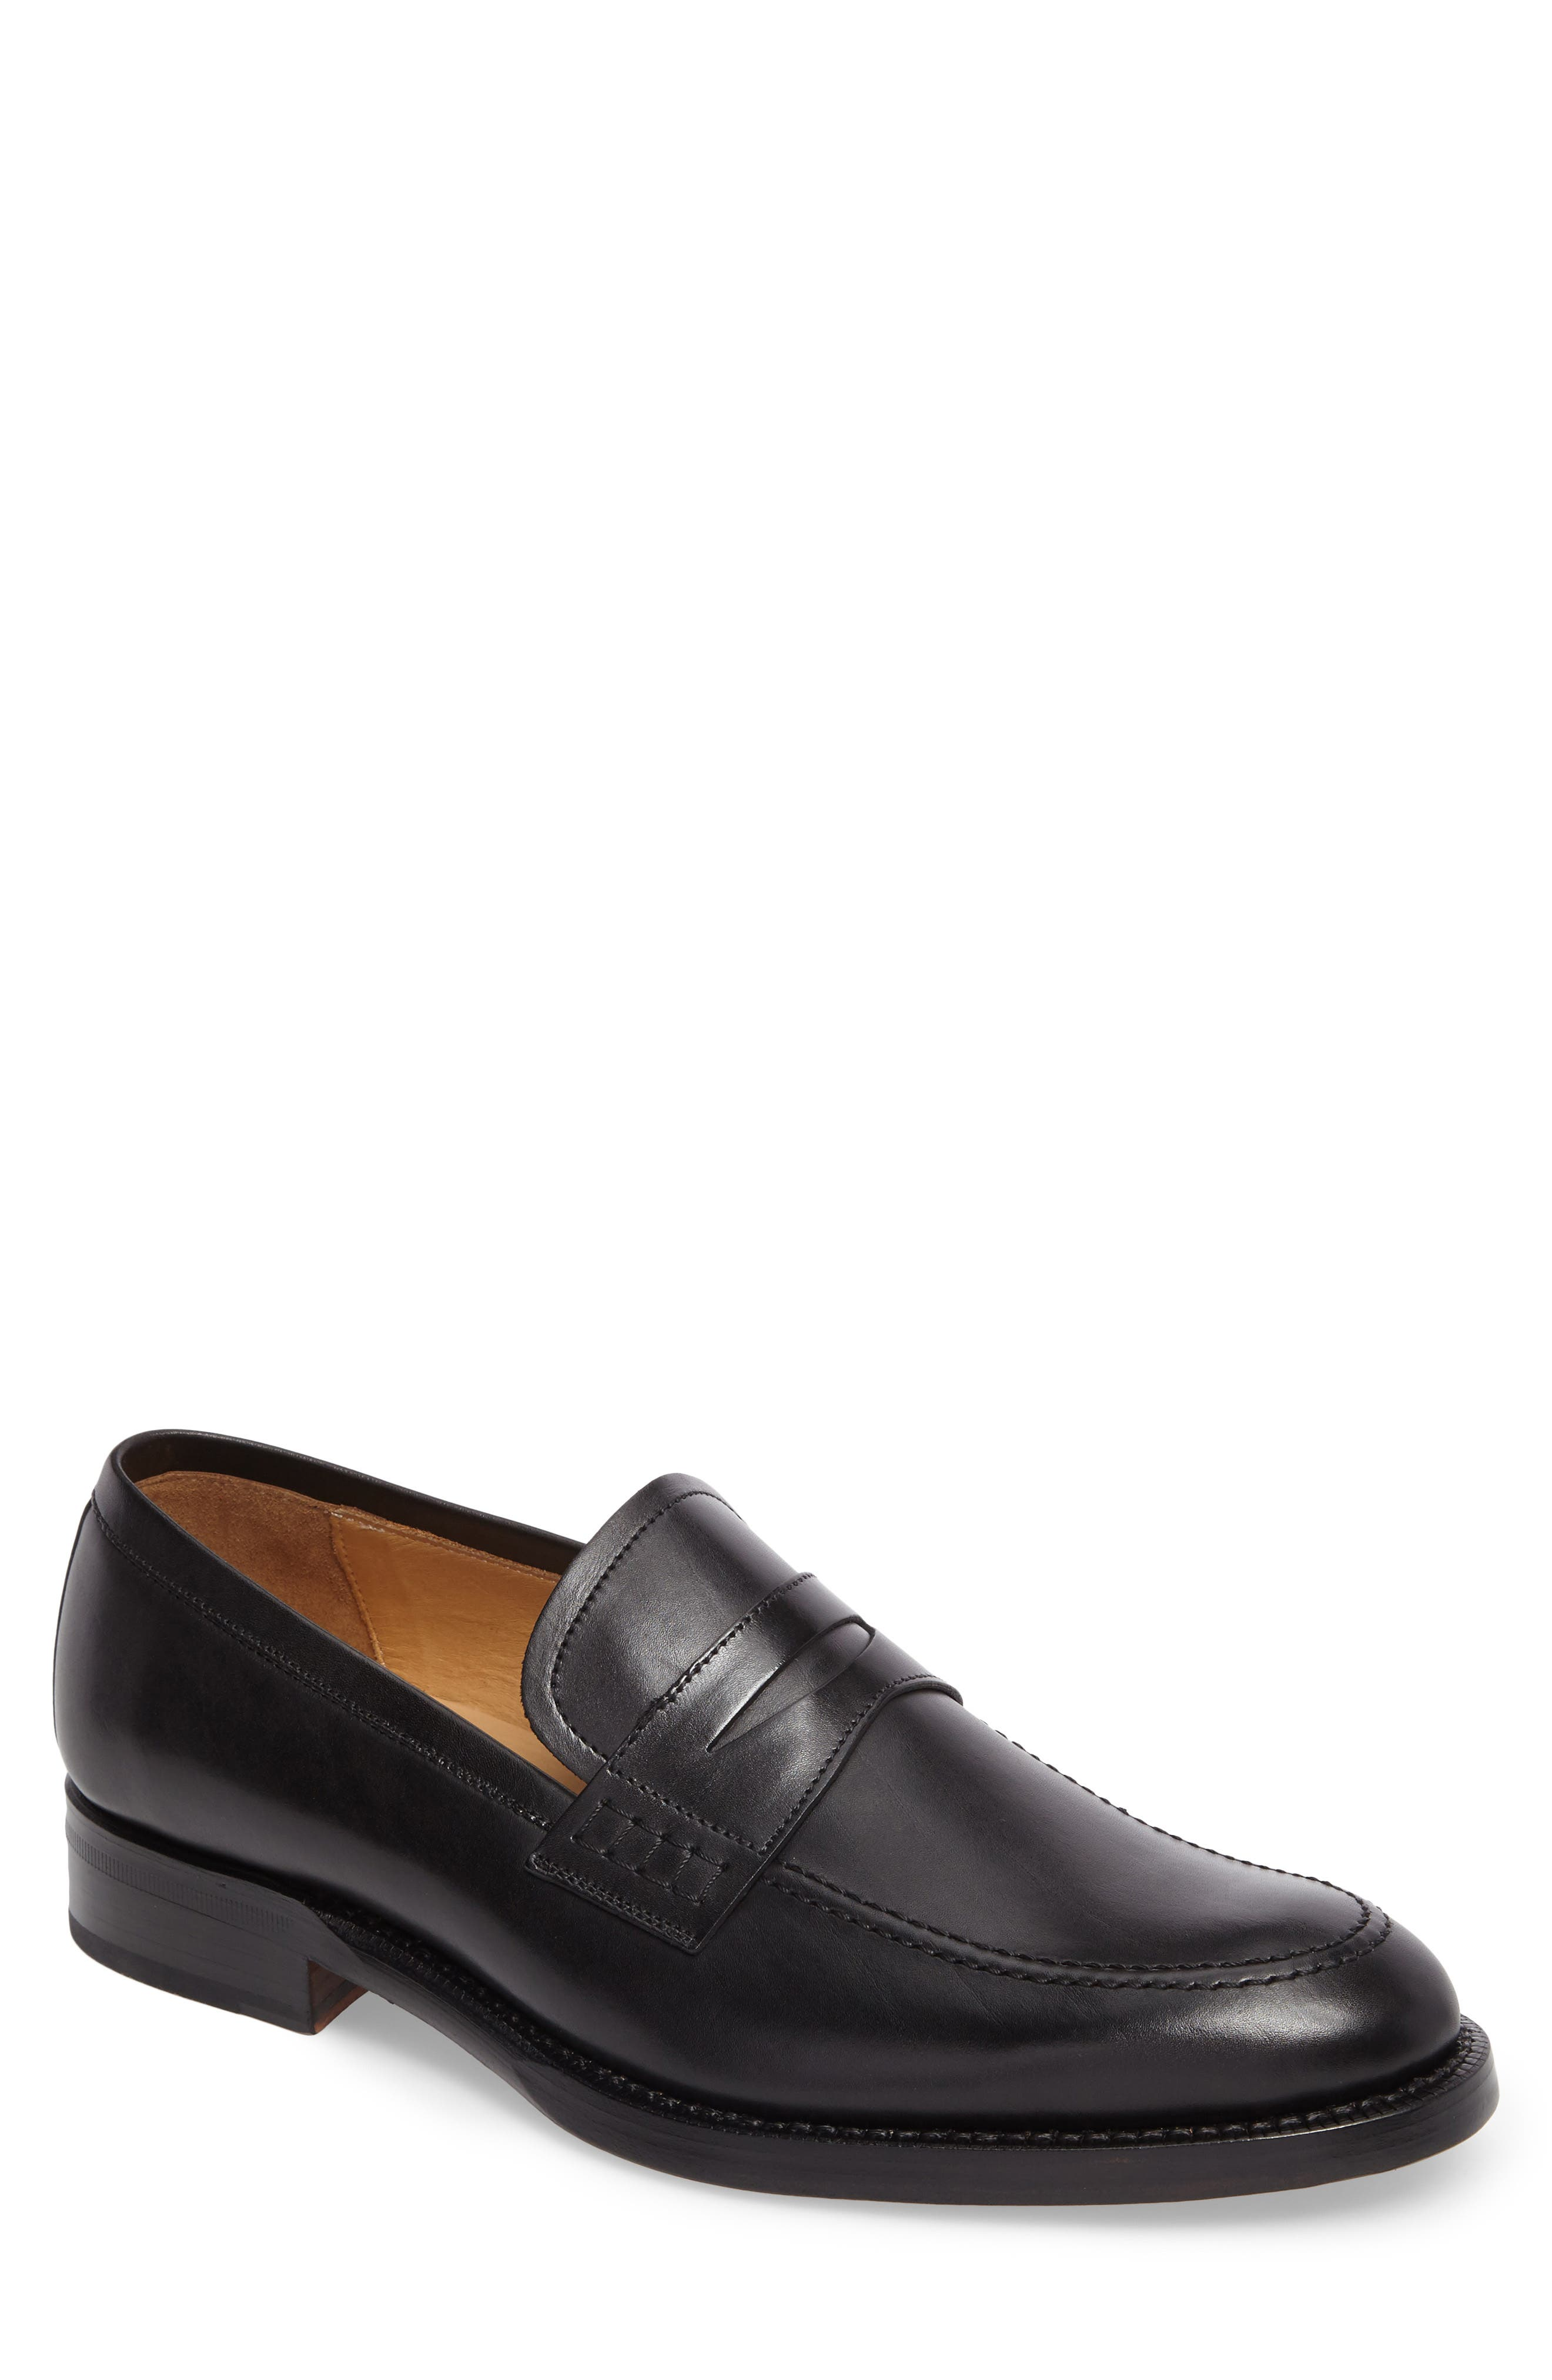 Archie Penny Loafer,                         Main,                         color, 001